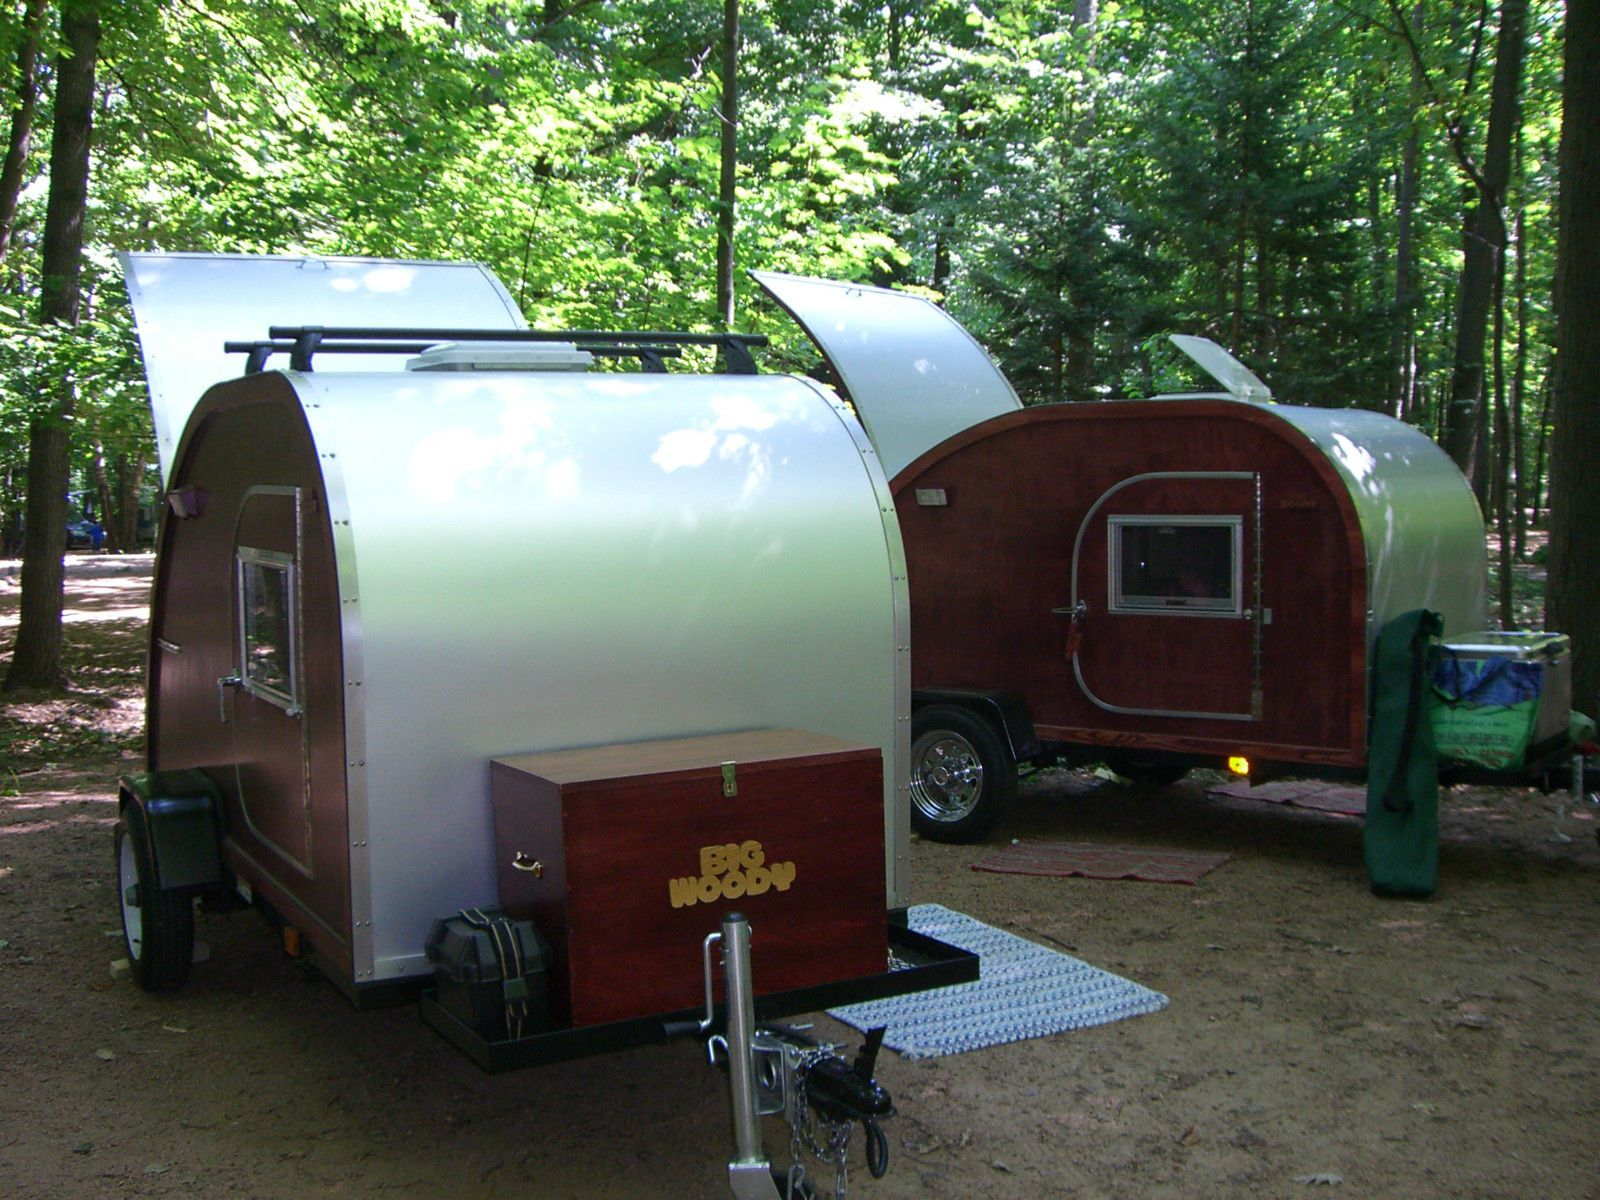 Posted in retro vintage tagged classic cars teardrop caravan vintage - Big Woody Teardrop Camper Trailer Plans Pdf Download